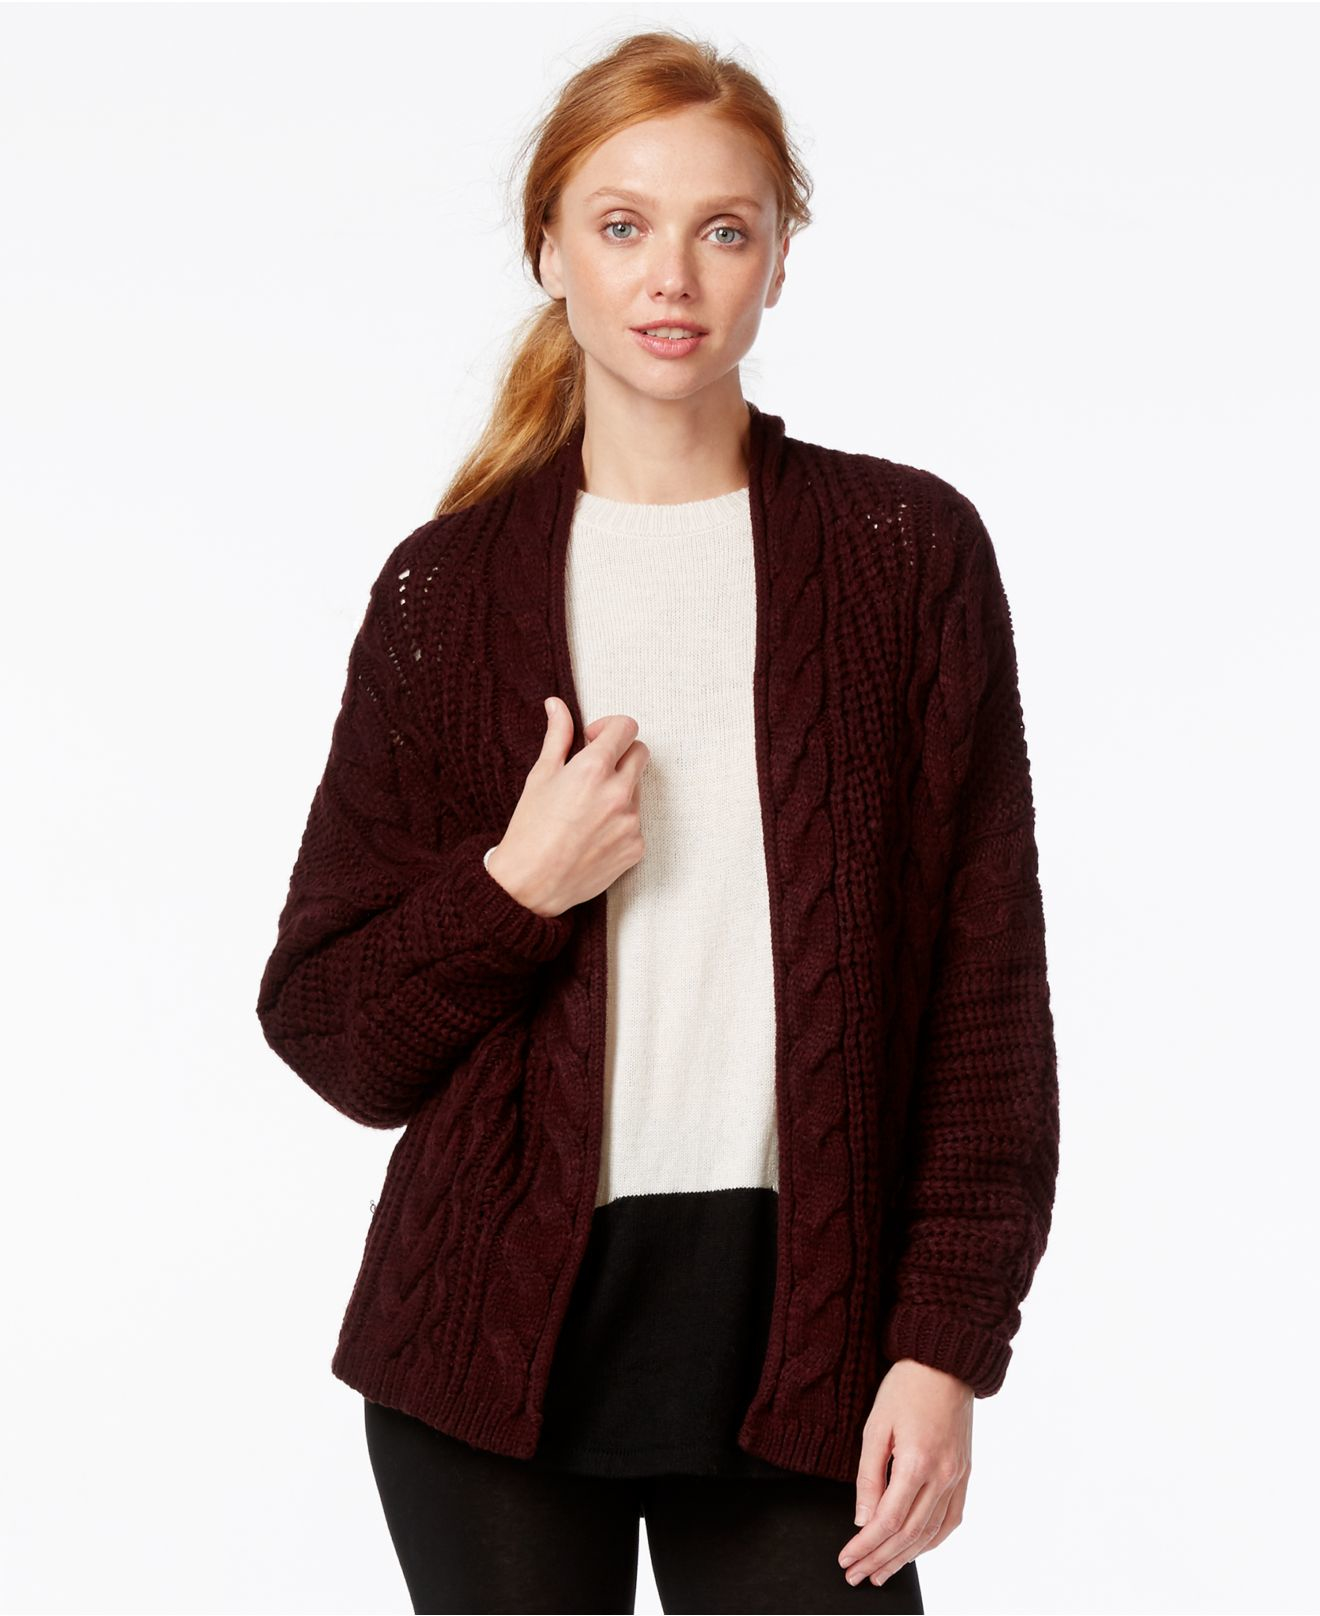 G.h. bass & co. Long-sleeve Cable-knit Cardigan in Purple | Lyst